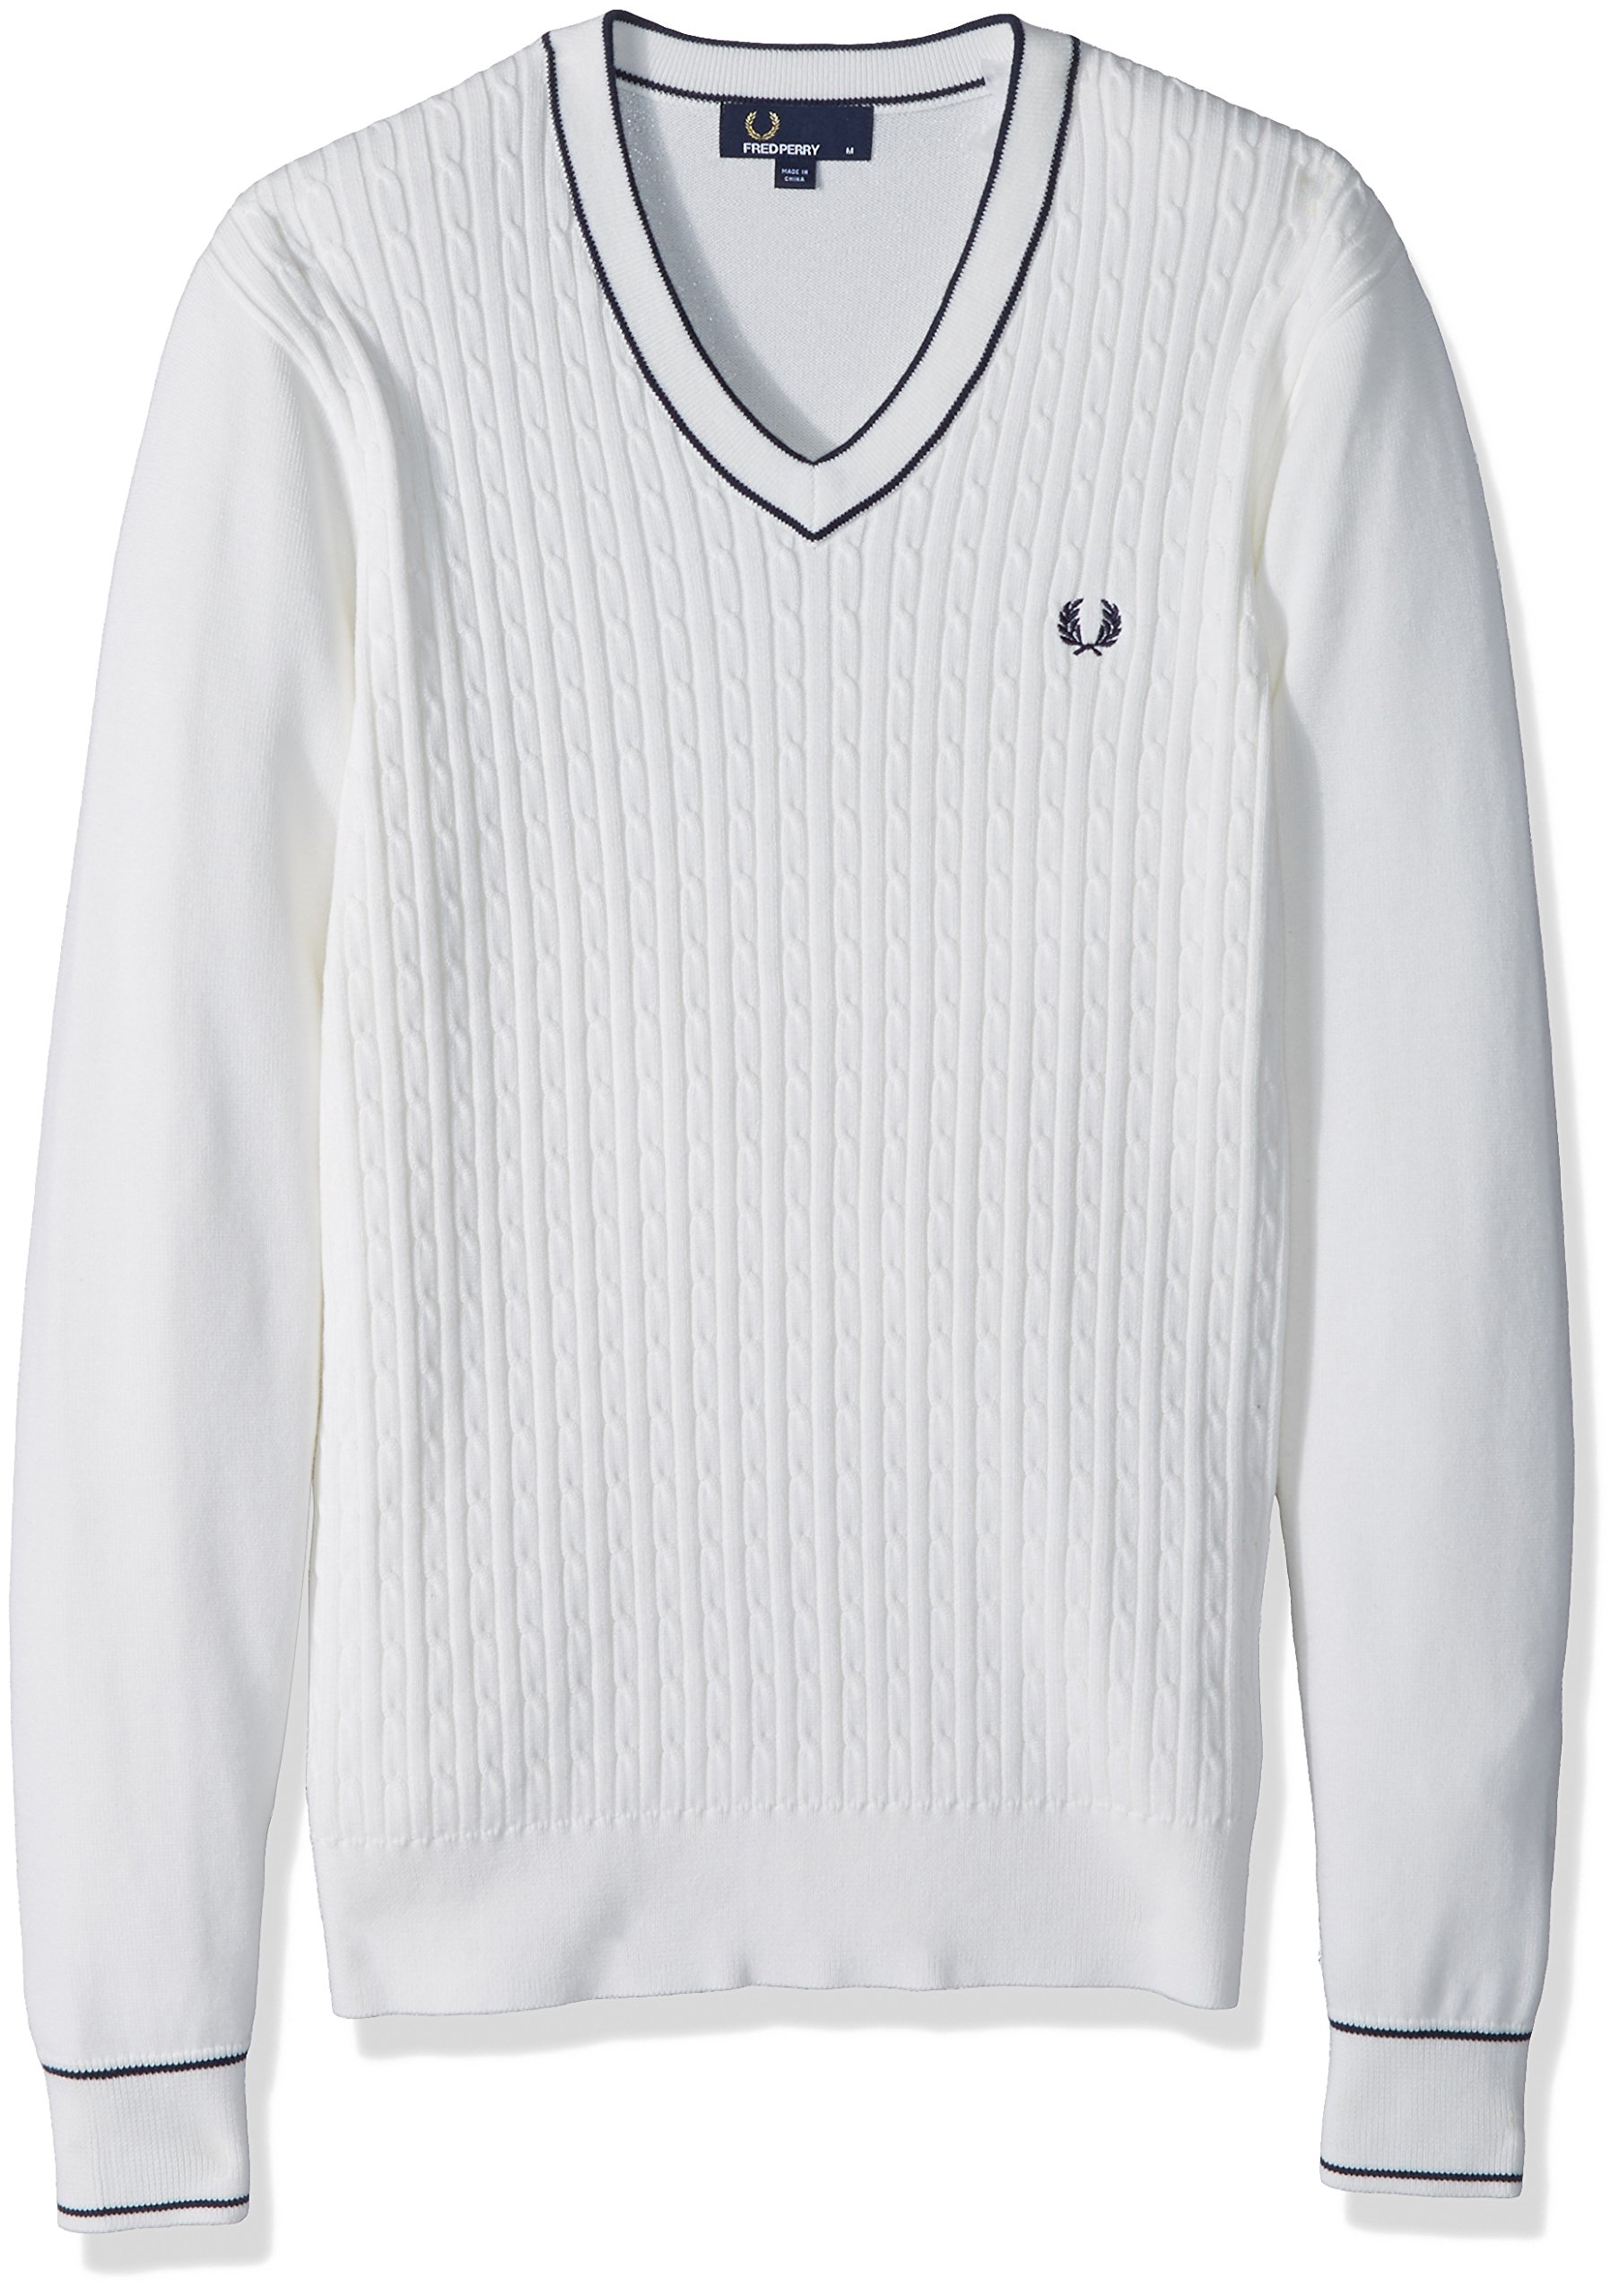 Fred Perry Men's Cable Knit V-Neck Jumper, Snow White, Medium